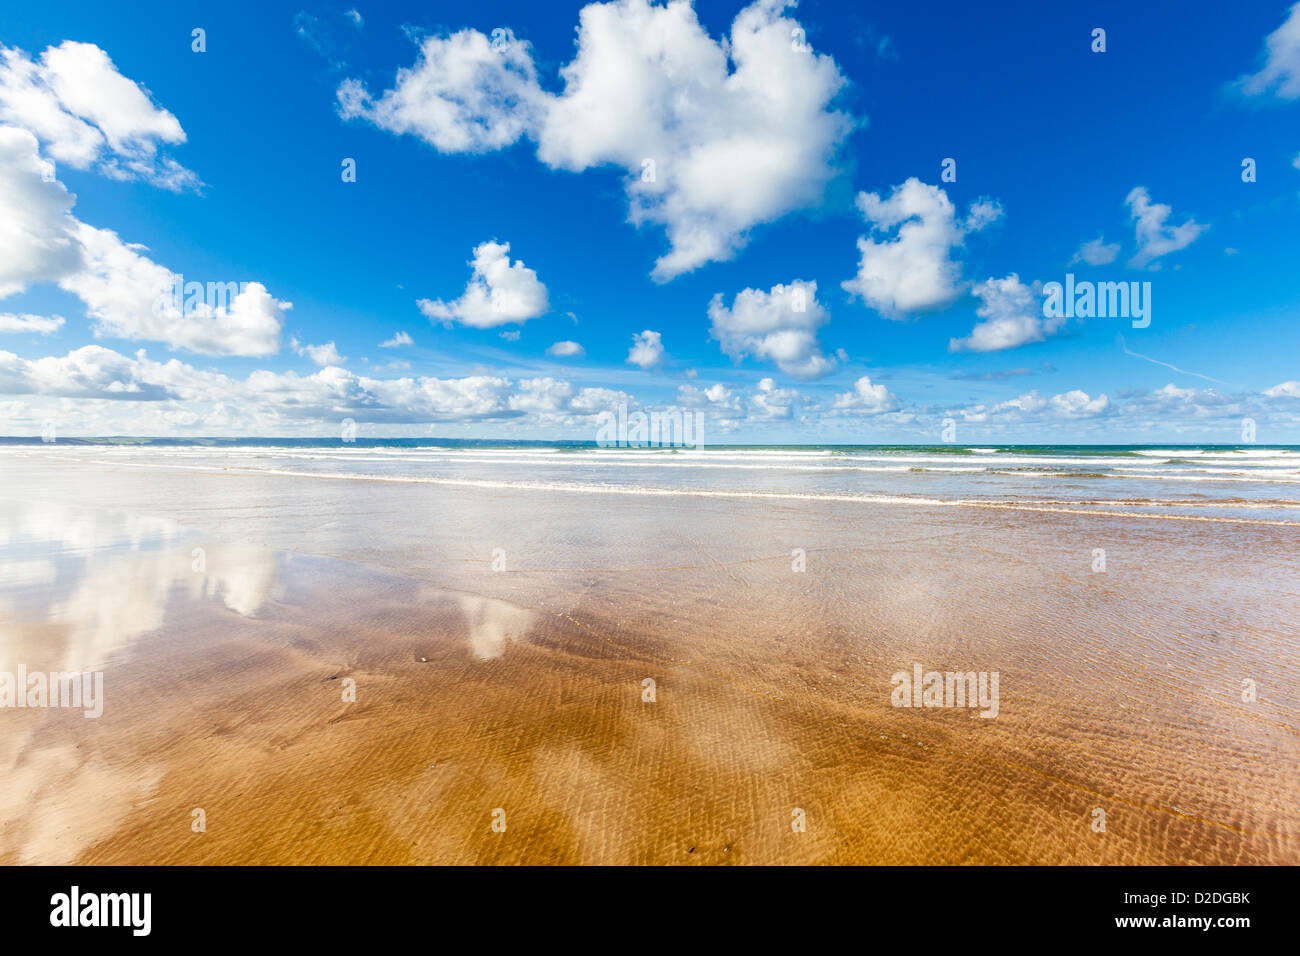 Empty beach with fluffy clouds reflected in the wet sand, Saunton Sands in North Devon, UK. - Stock Image